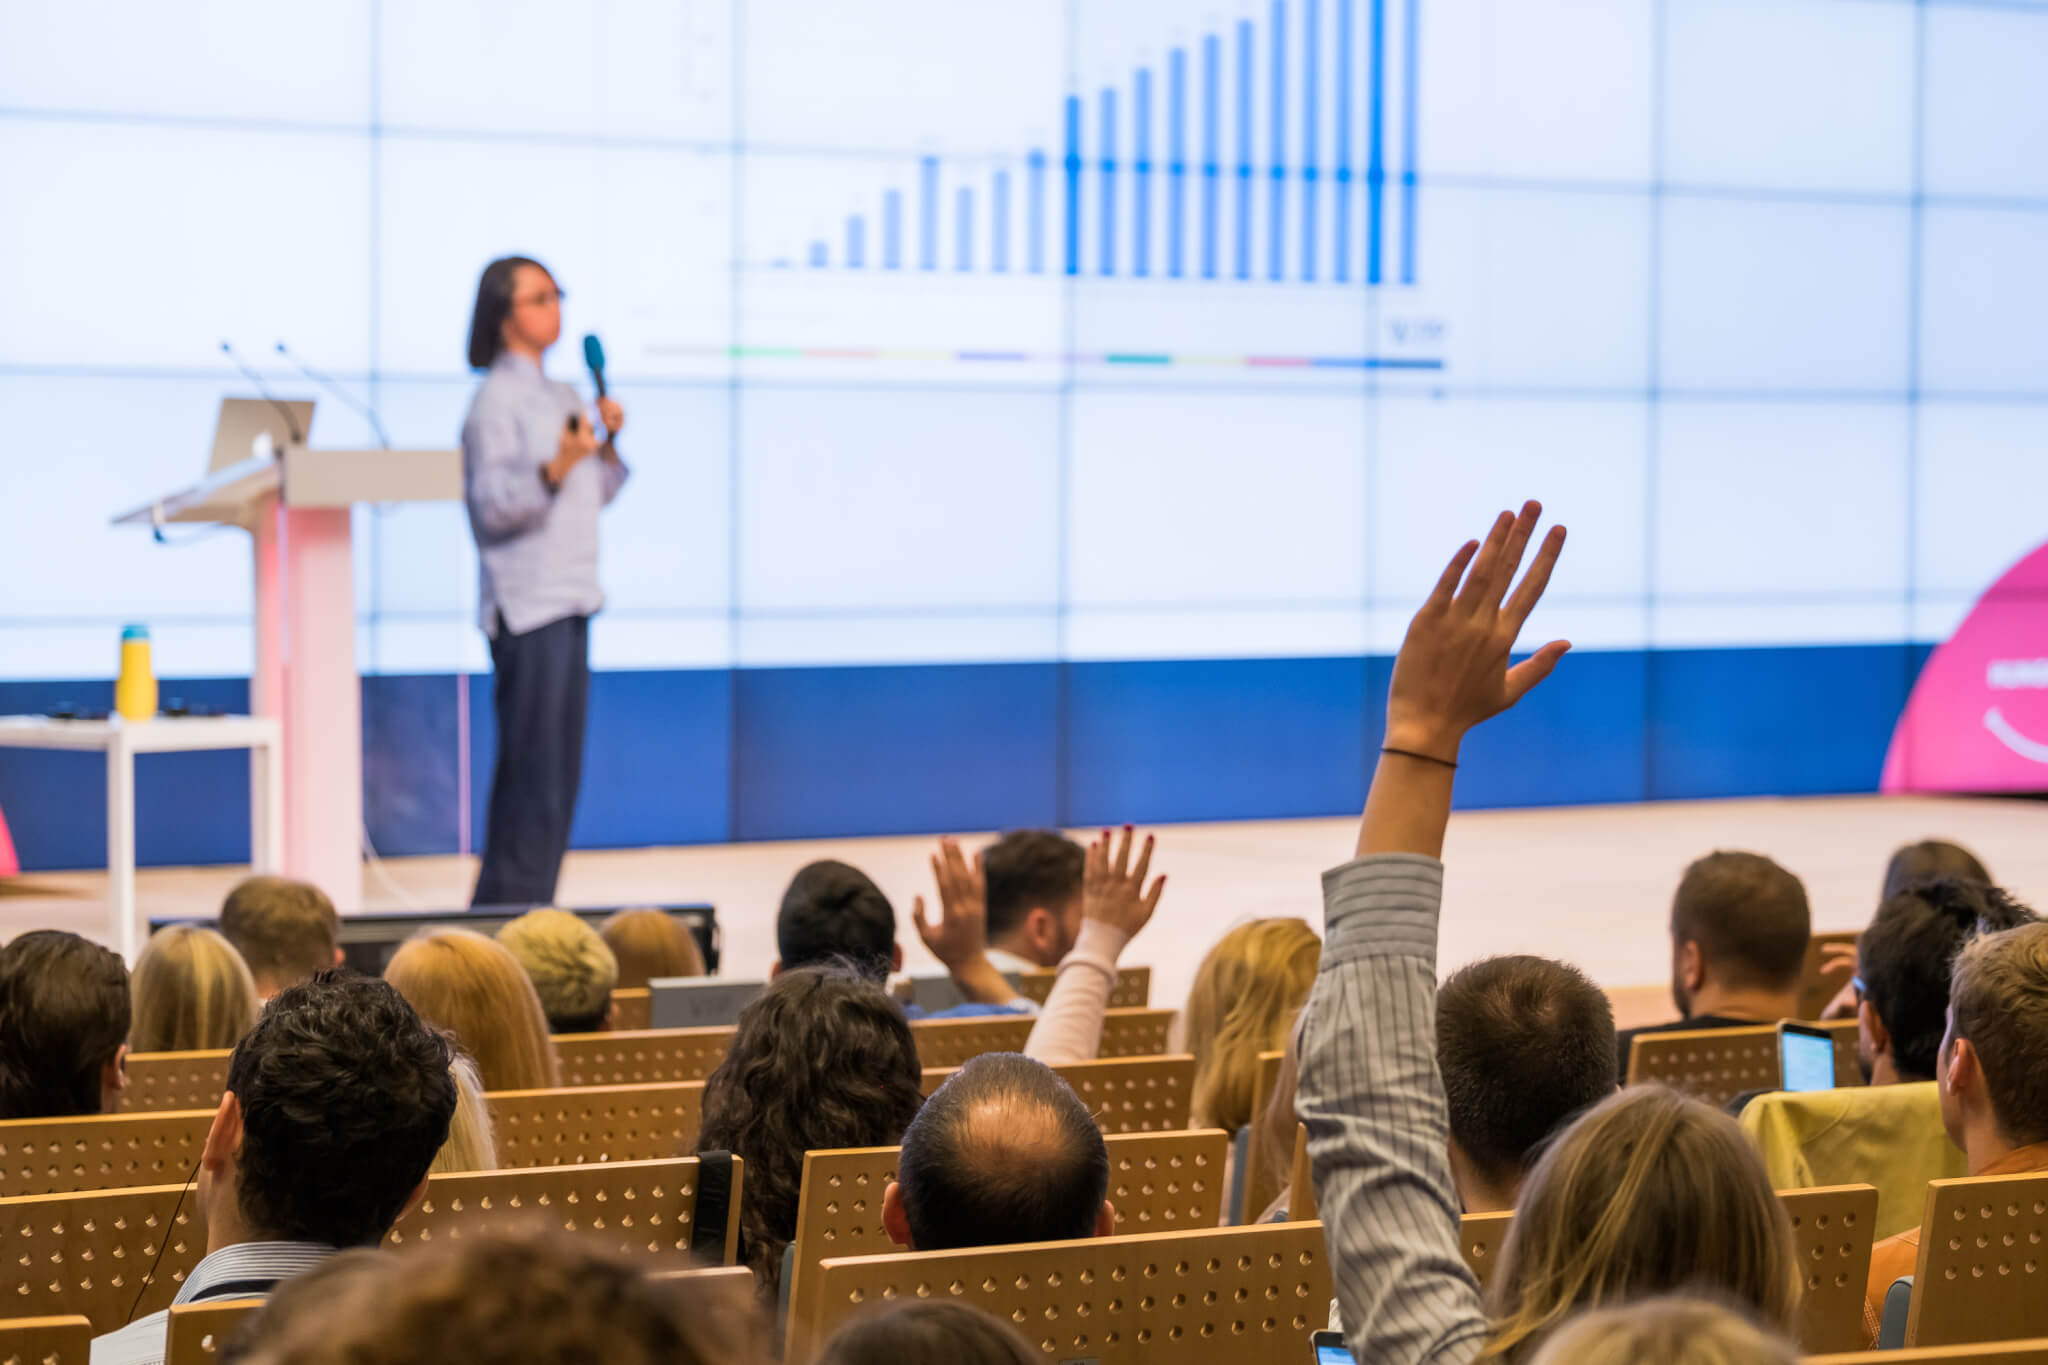 Attract people to your event